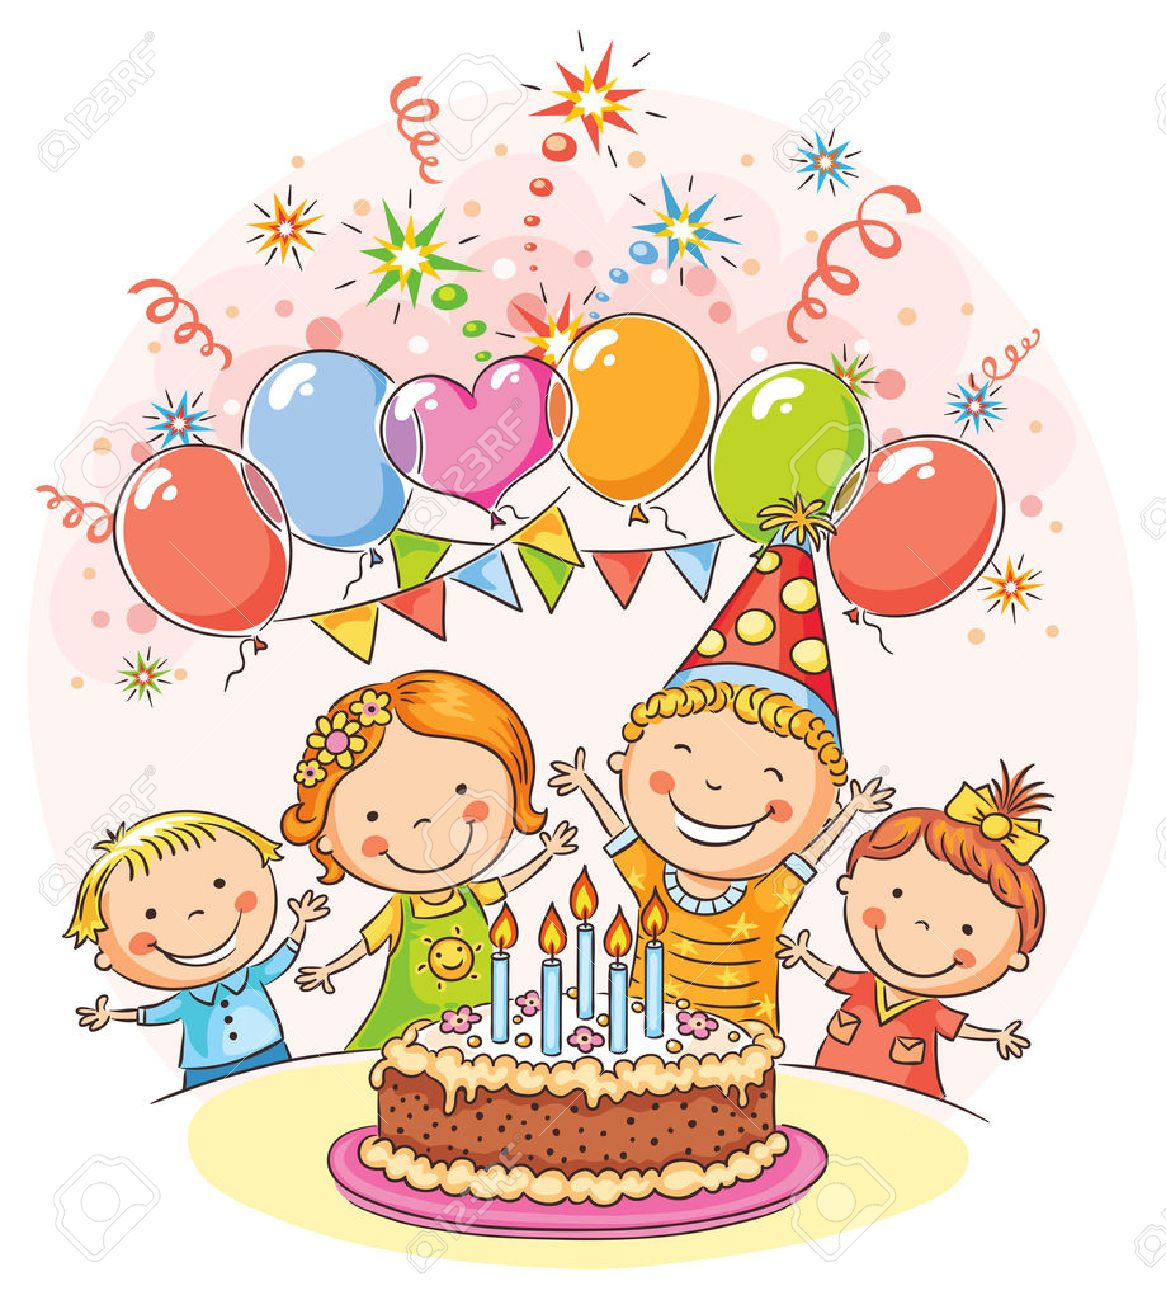 Kids Birthday Party With A Big Cake And Colorful Balloons No Gradients Stock Vector